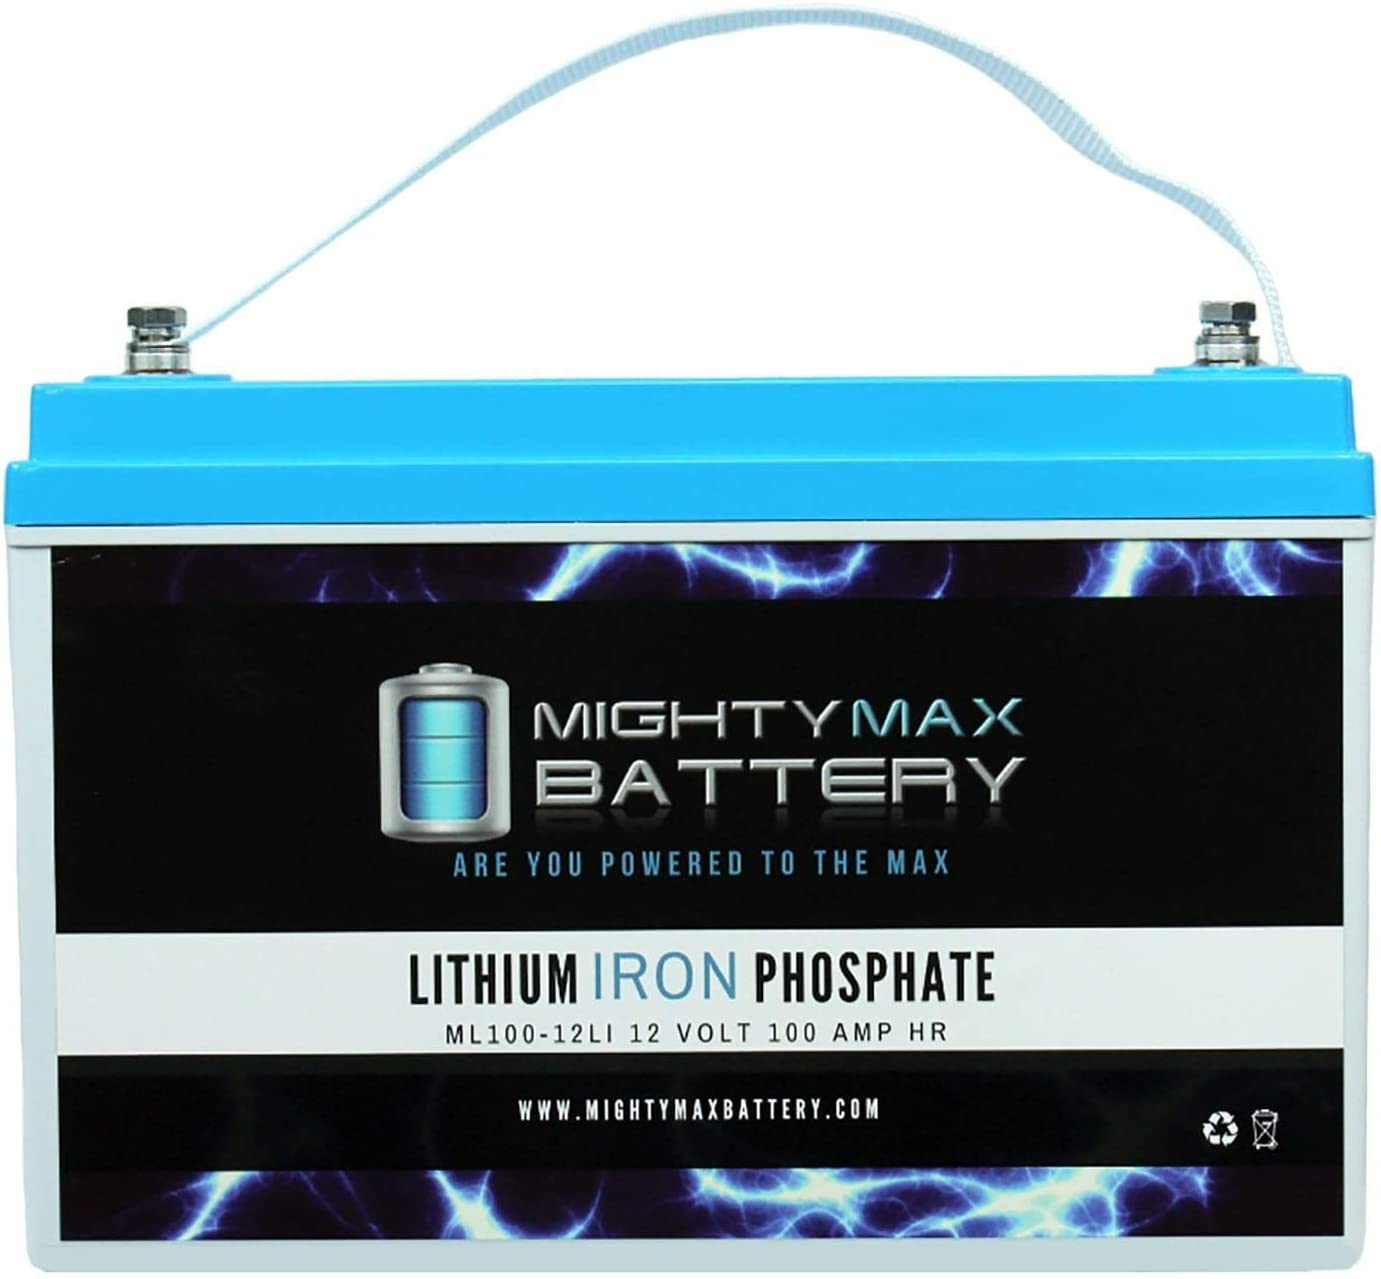 Mighty Max Battery 12V 100AH Fashionable Replacement Lithium REC for Los Angeles Mall